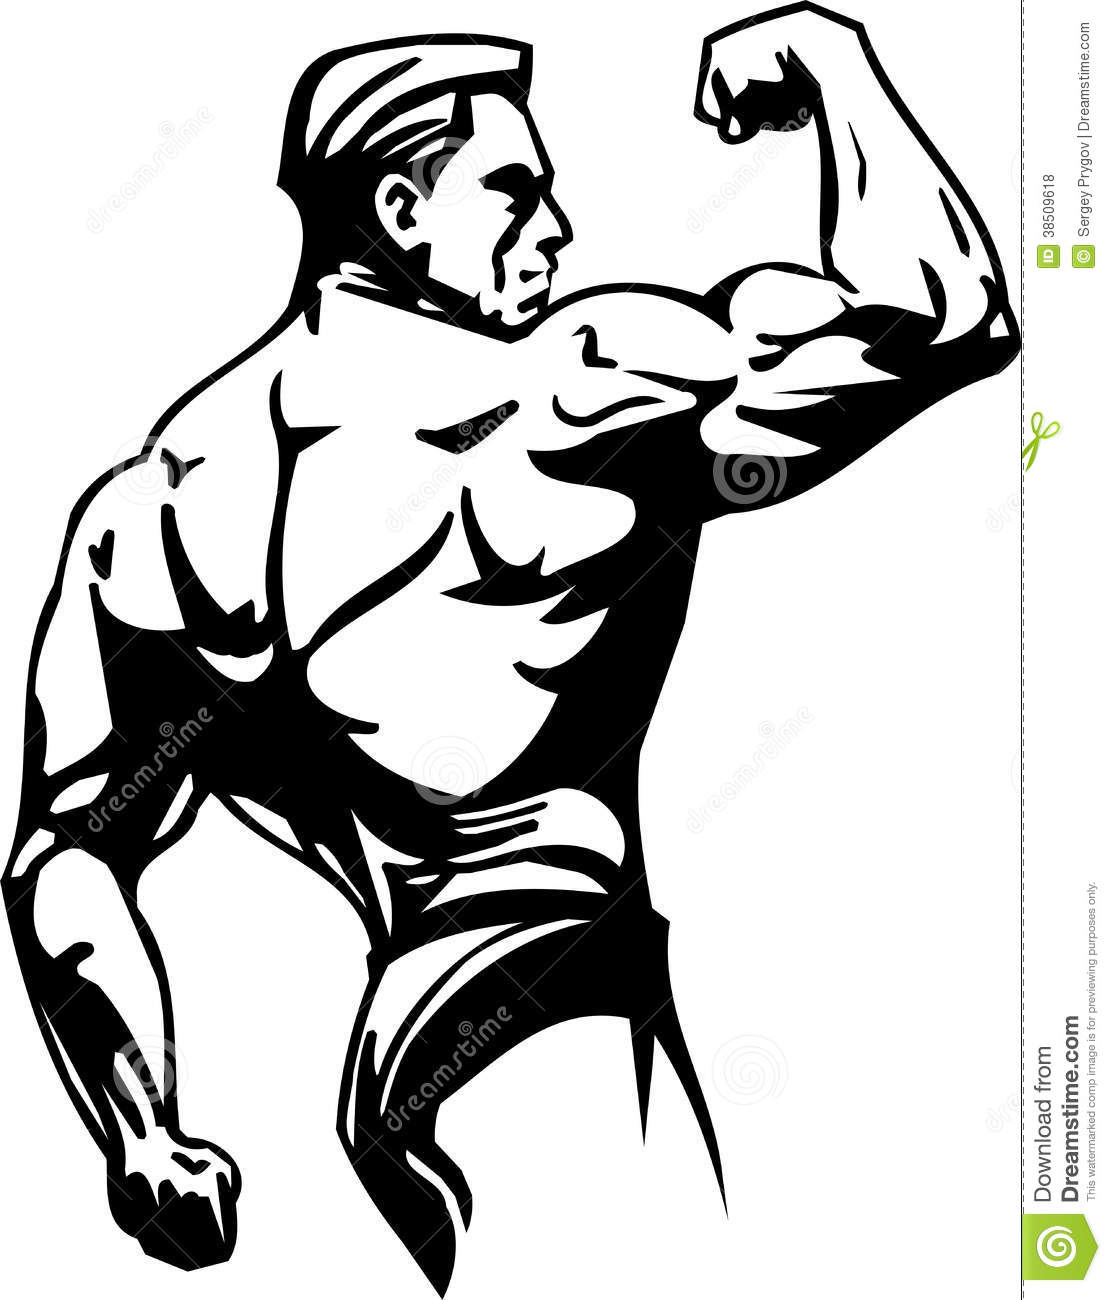 Bodybuilding And Powerlifting - Vector. Royalty Free Stock Photos - Image: 38509618